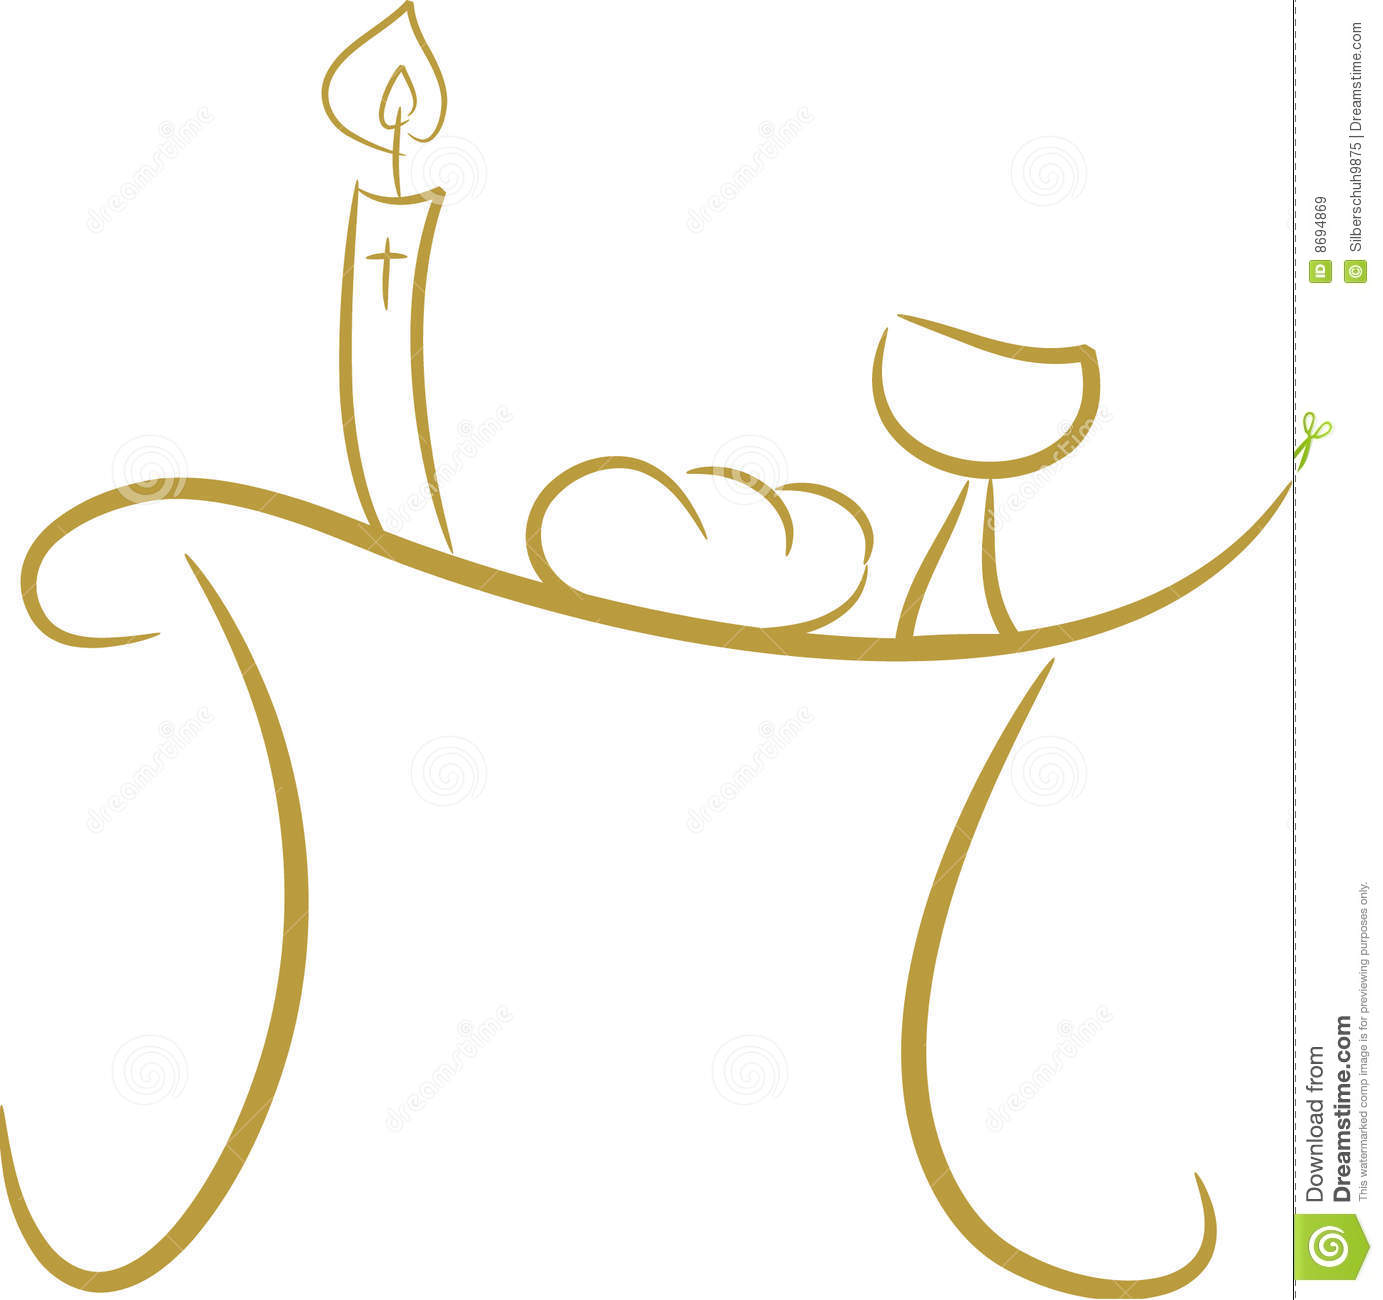 ... symbols including candle (light), chalice (wine), cross and bread